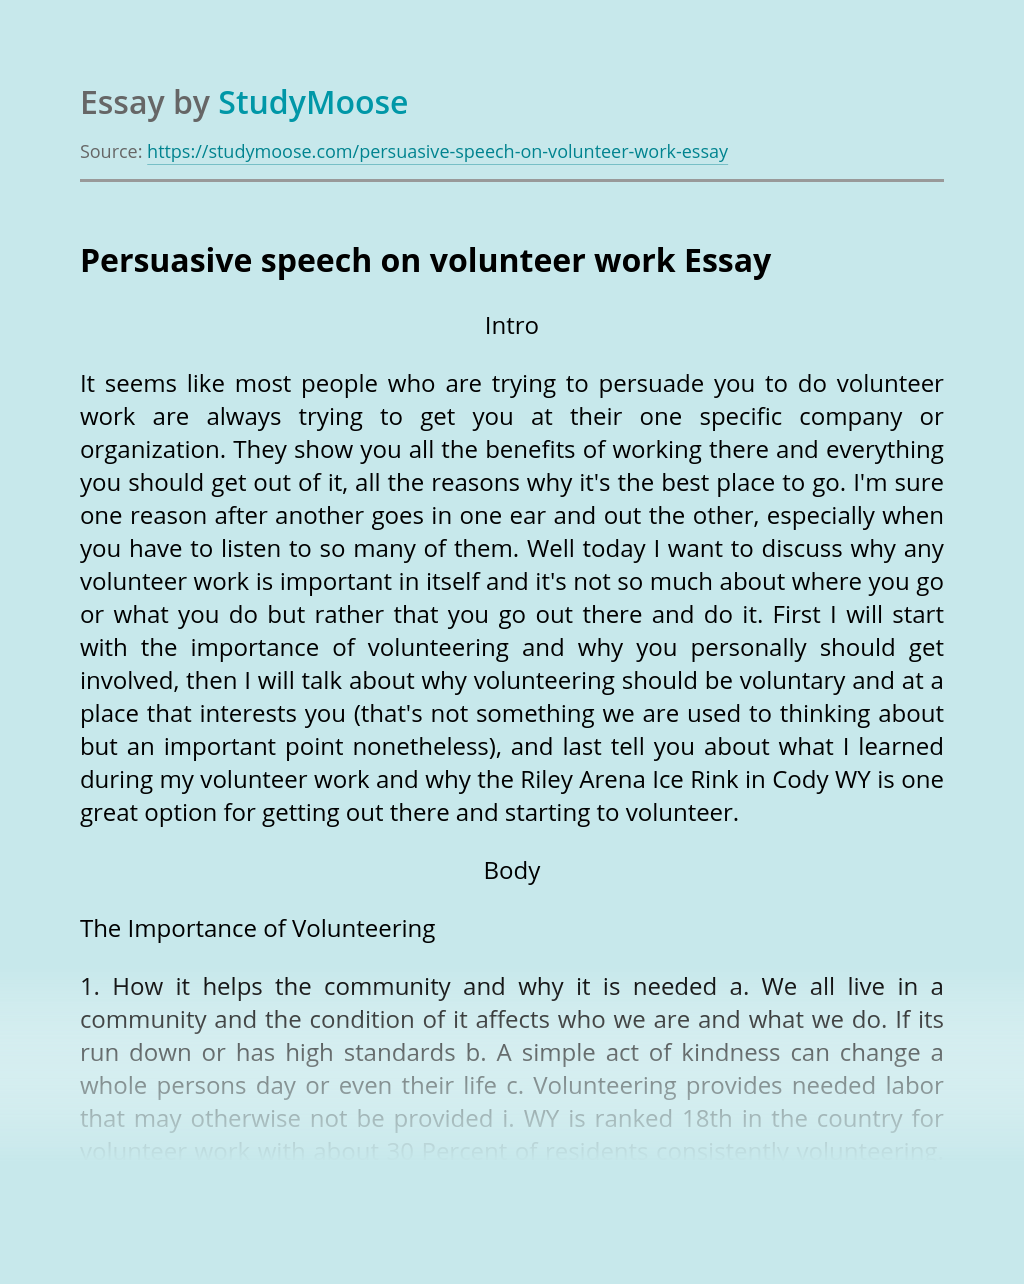 Persuasive speech on volunteer work